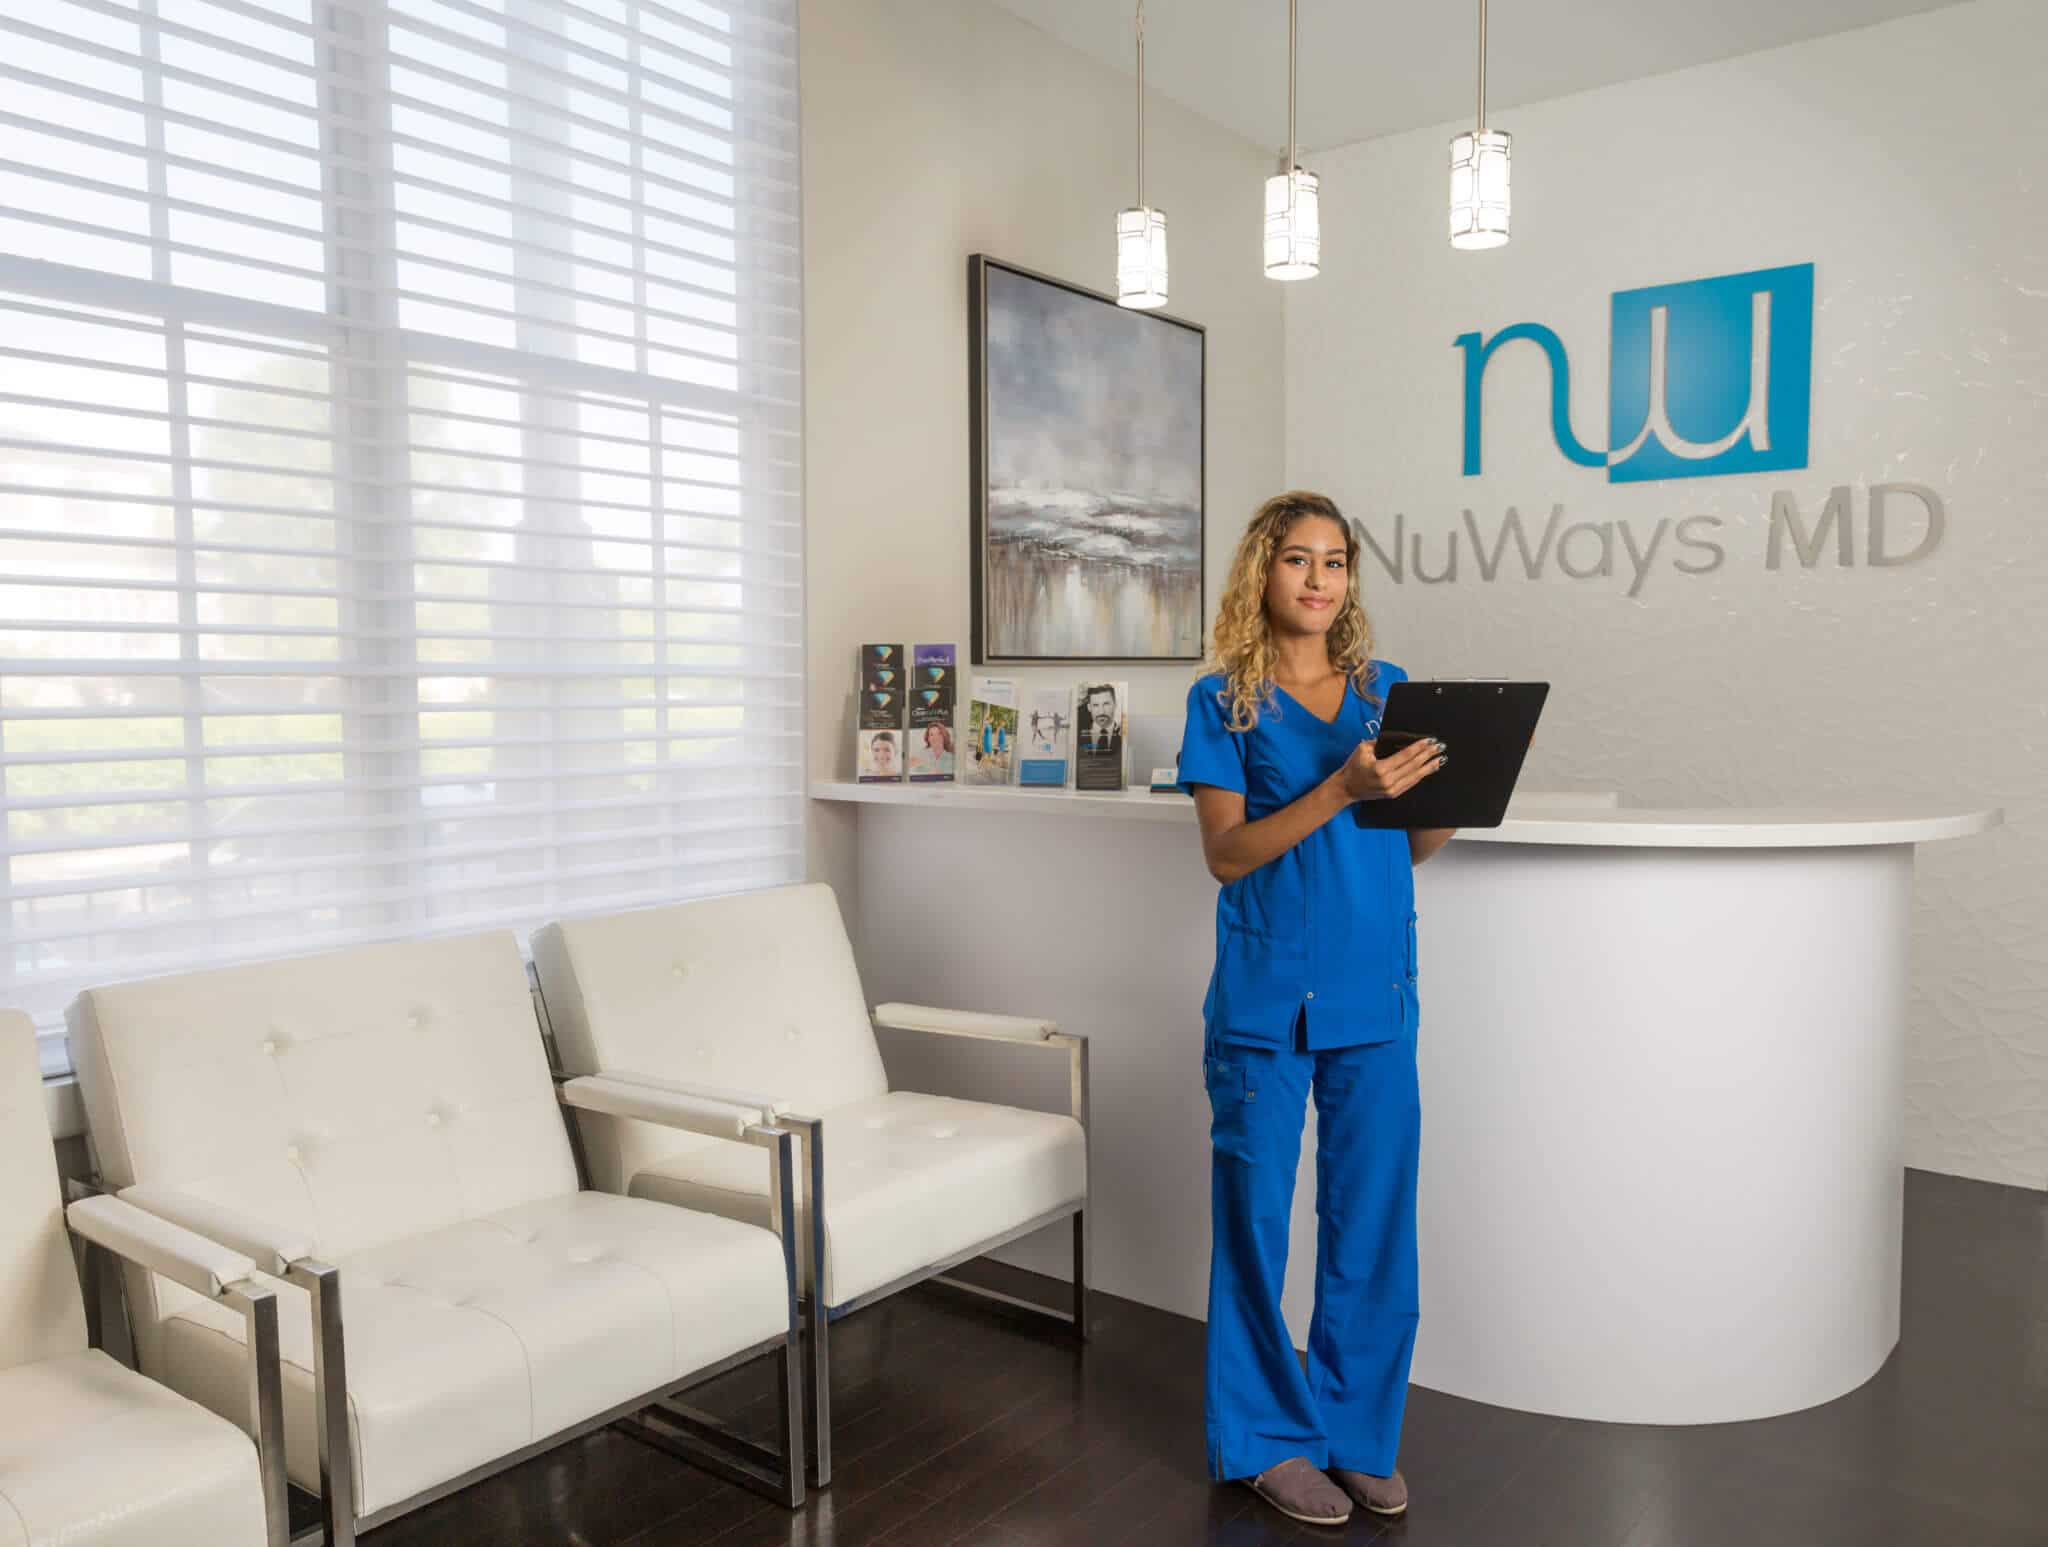 NuWays MD - Anti-Aging & Stem Cell Health Center in Boca Raton